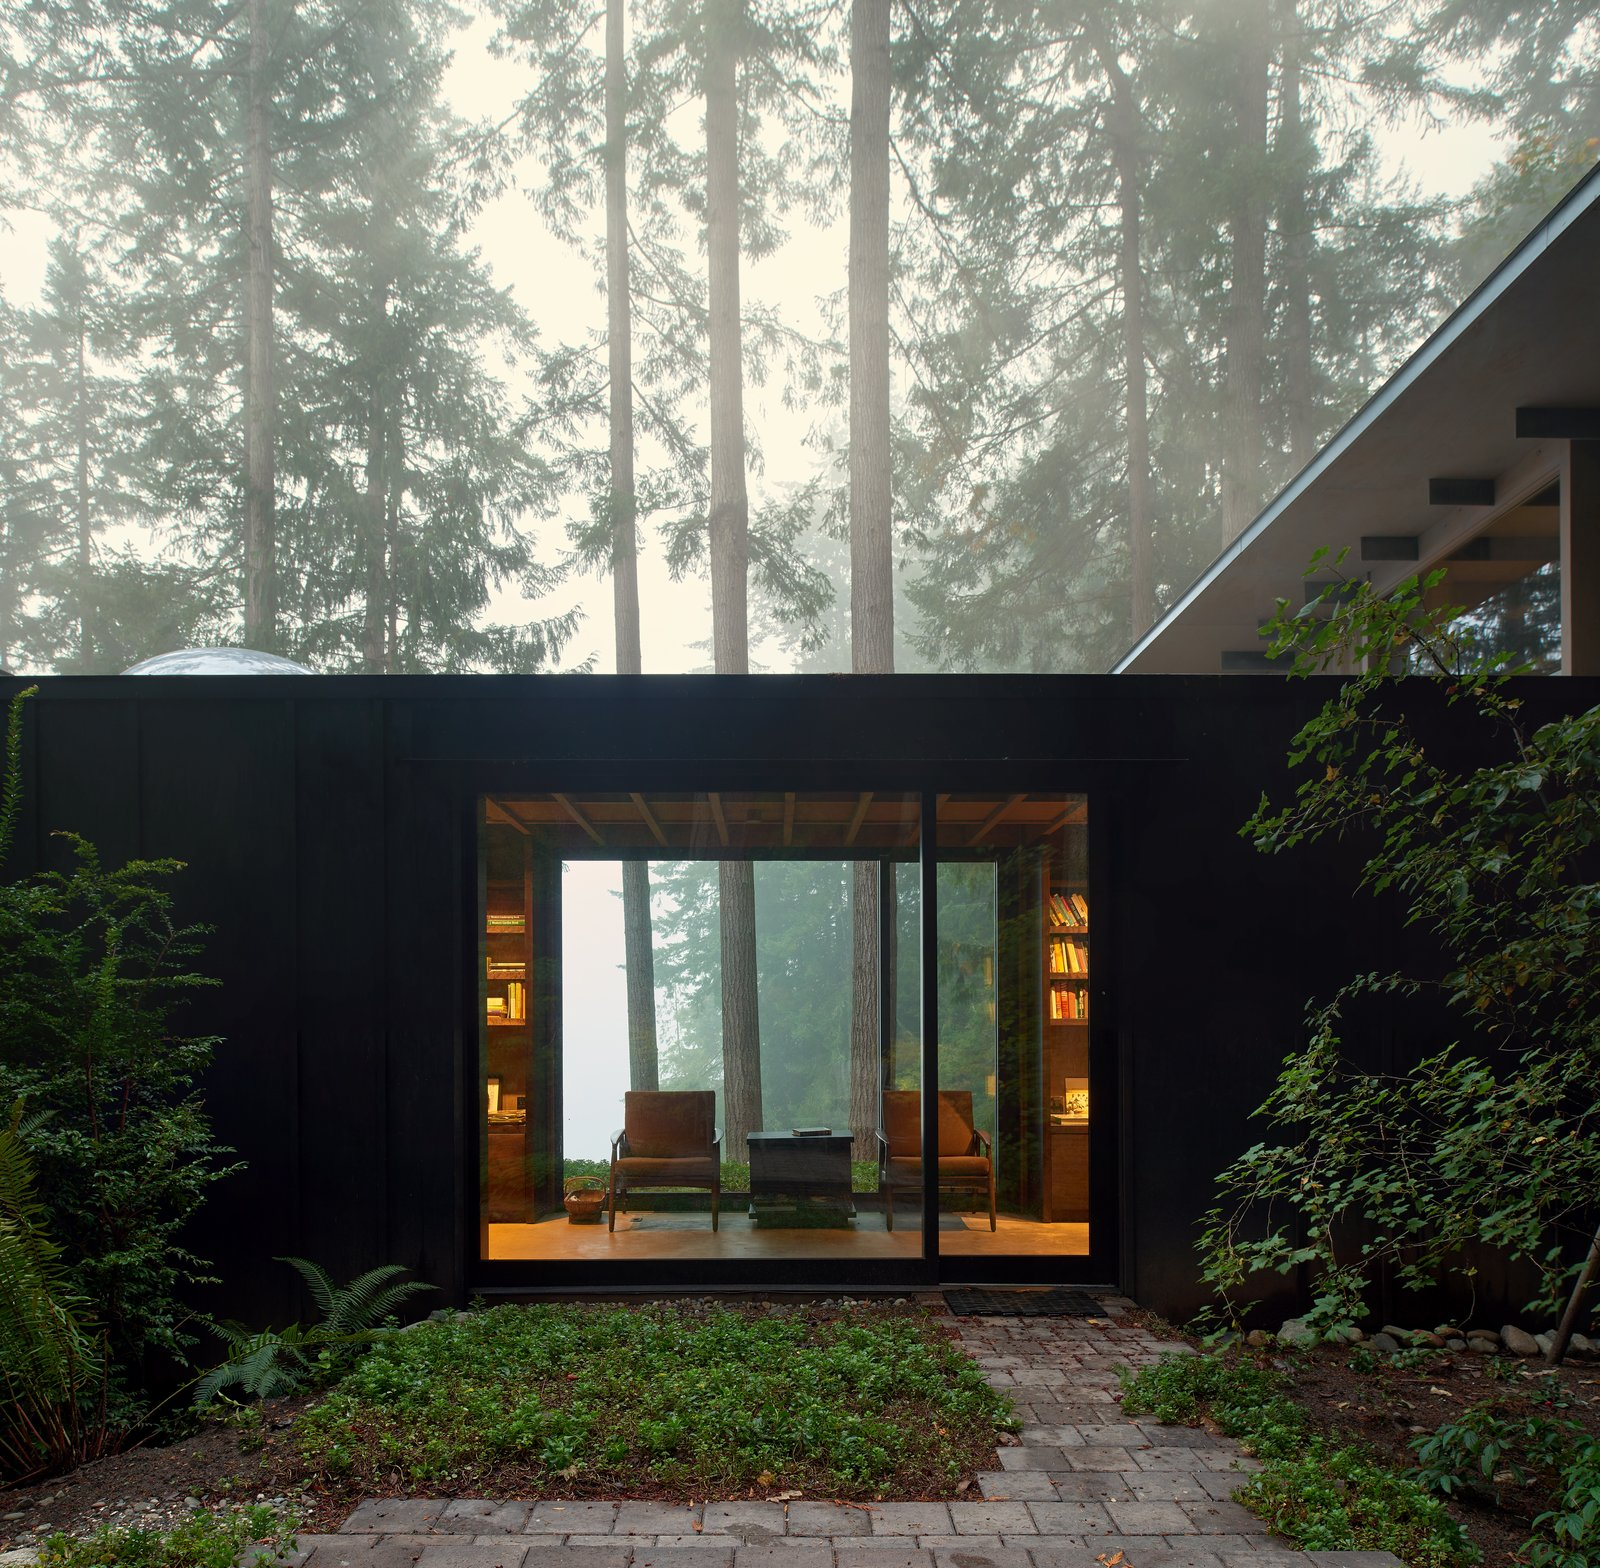 the-cabin-is-intentionally-subdued-in-color-and-texture-allowing-it-to-recede-into-the-woods-and-defer-to-the-beauty-of-the-landscape.jpg